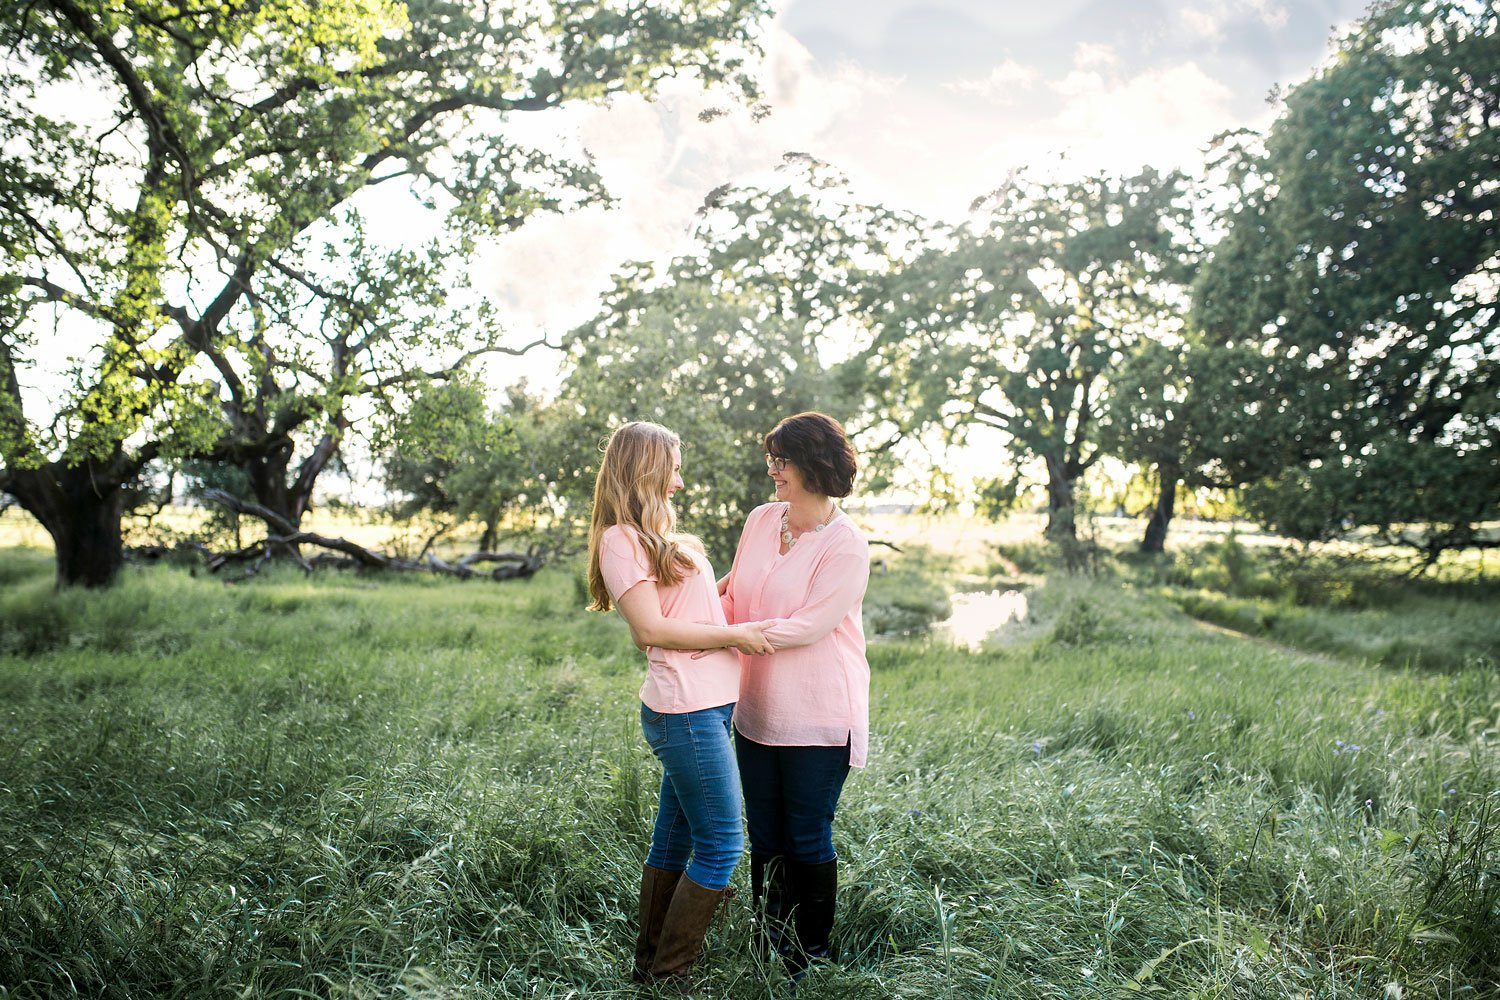 Roseville Family Photographer, Amy Wright Photography, Northern California, Mother and Daughter